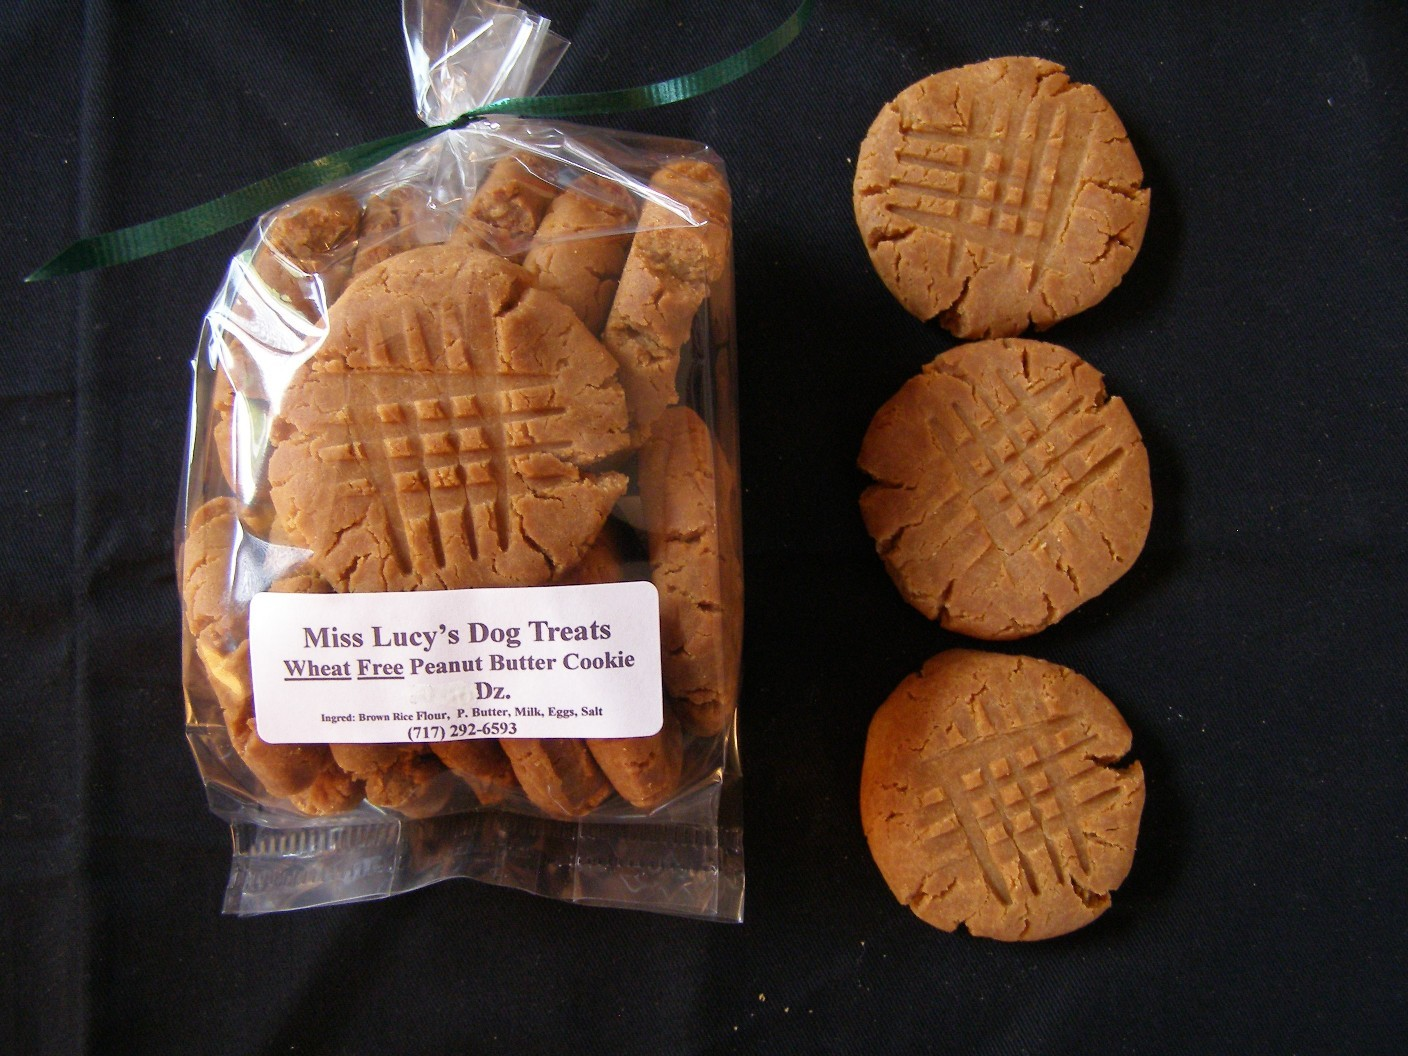 Wheat Free Peanut Butter Cookie